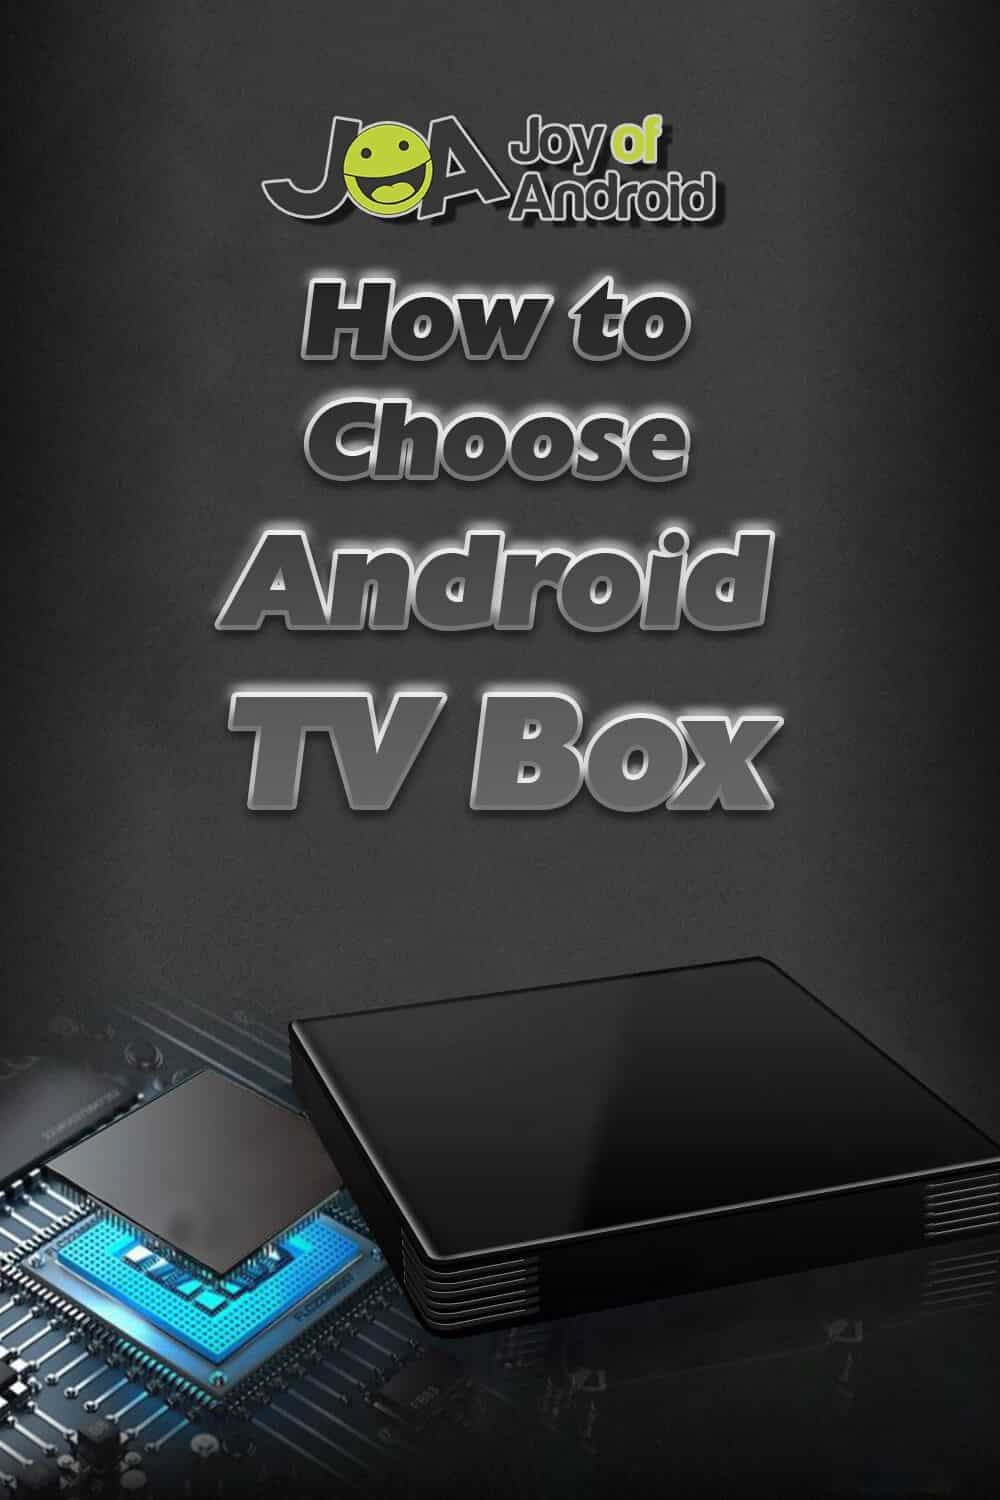 How to Choose Android TV Box